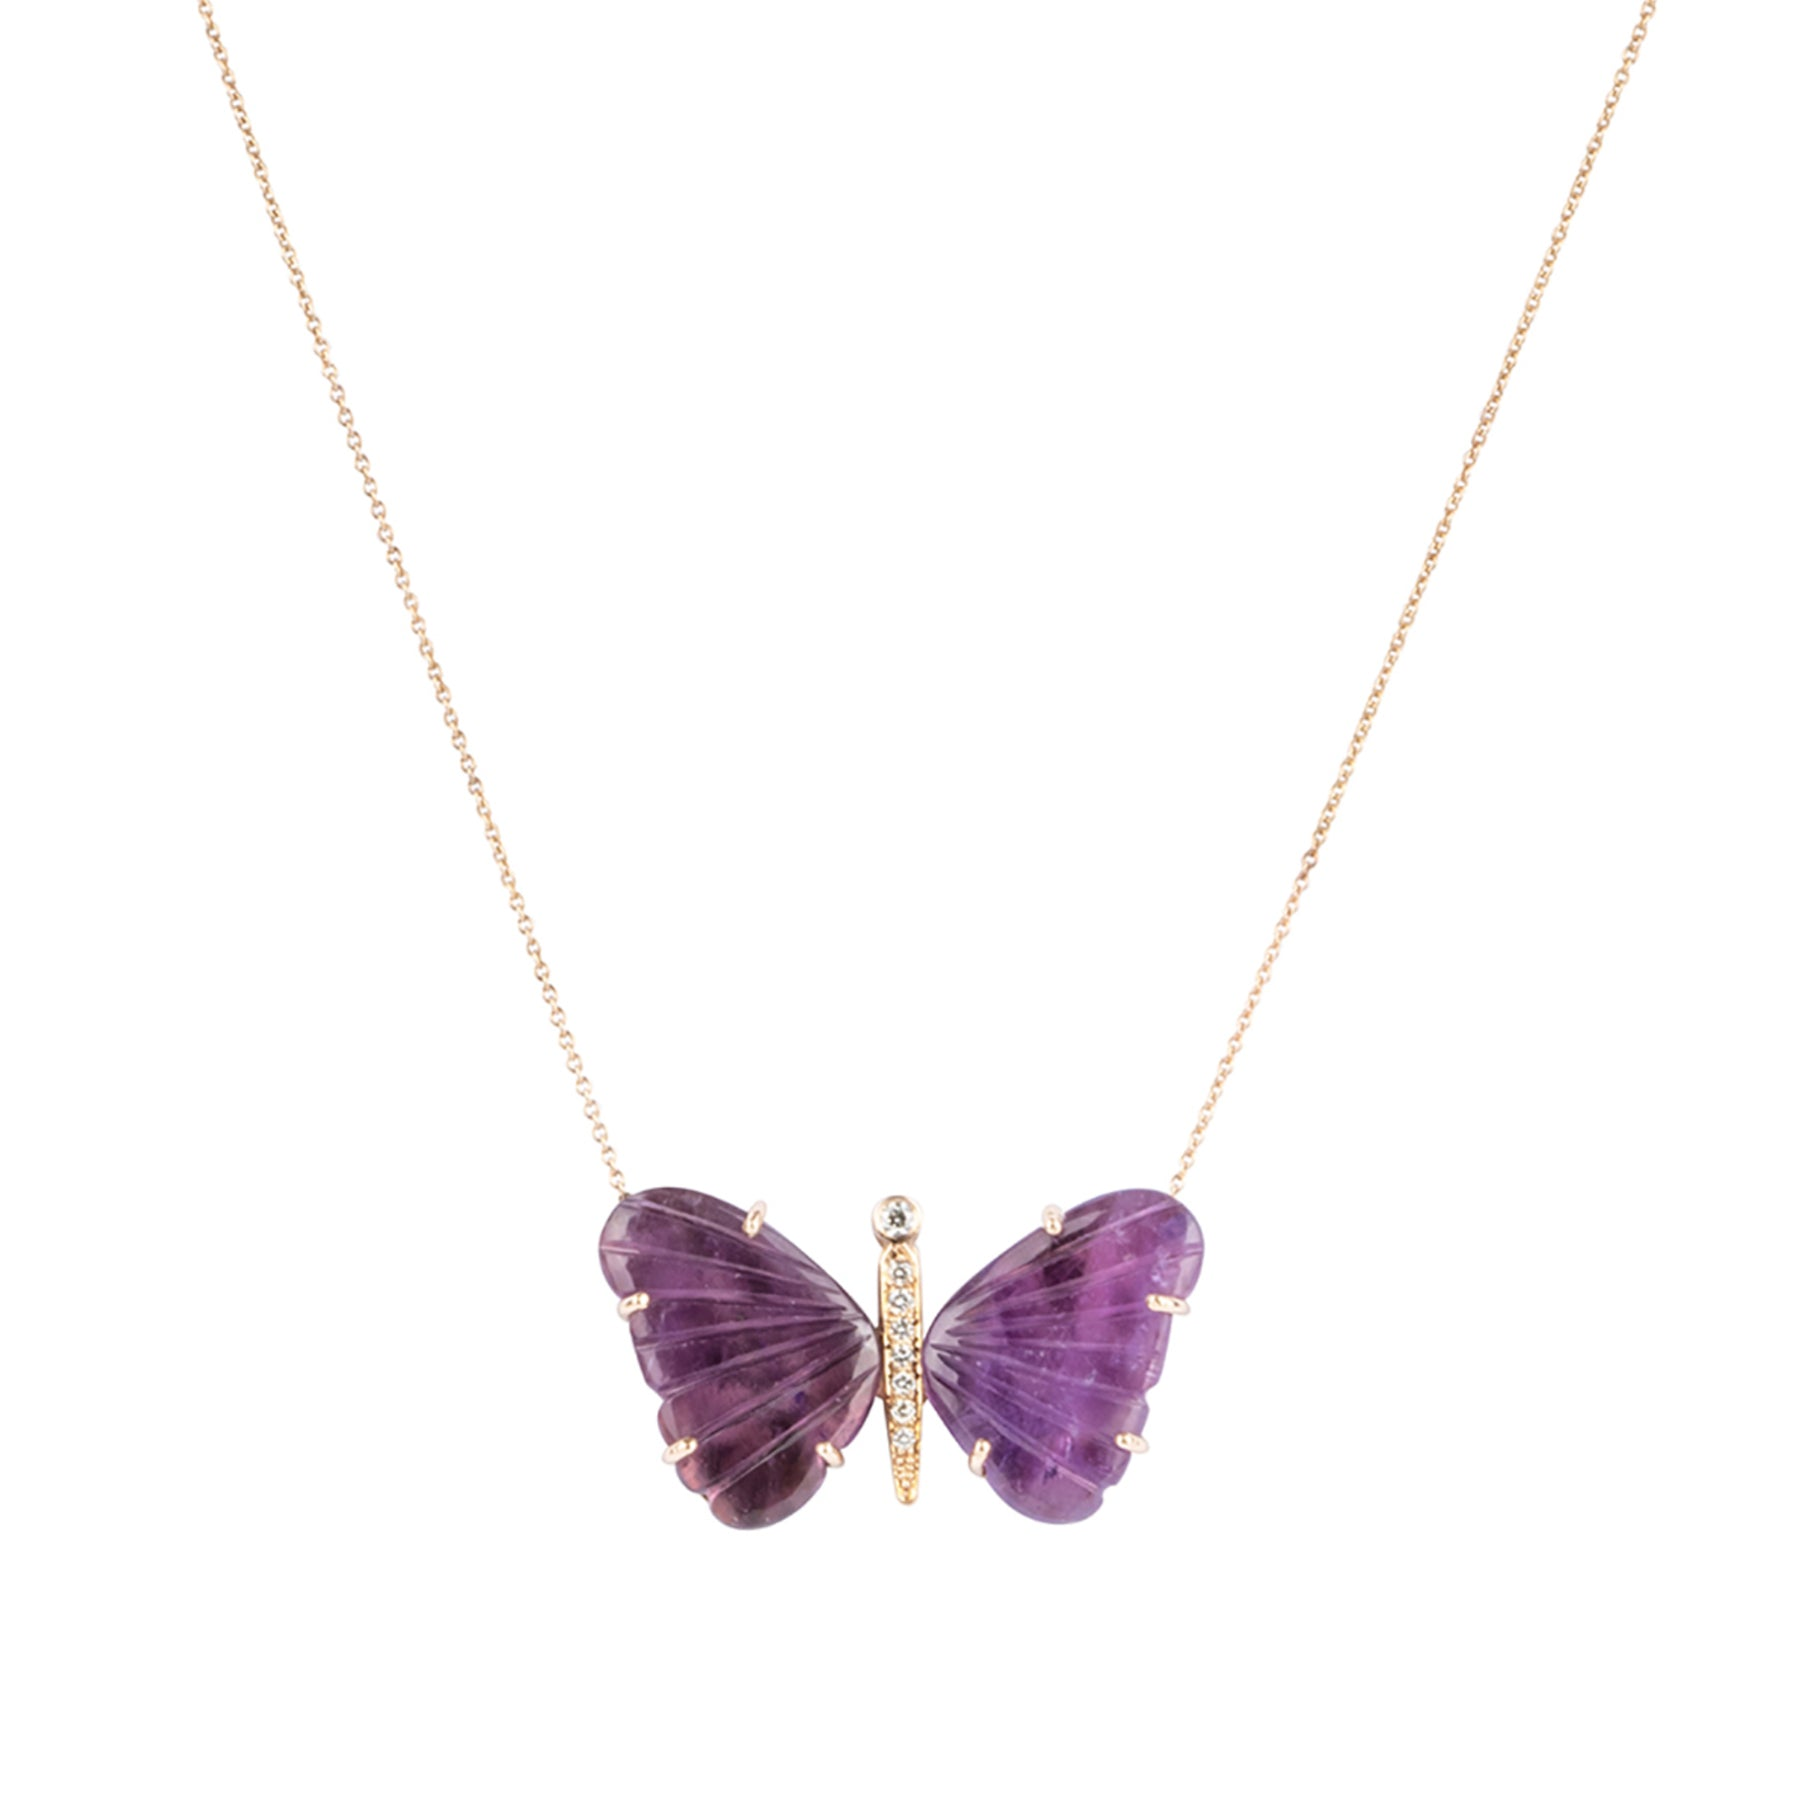 Medium Amethyst Butterfly Necklace